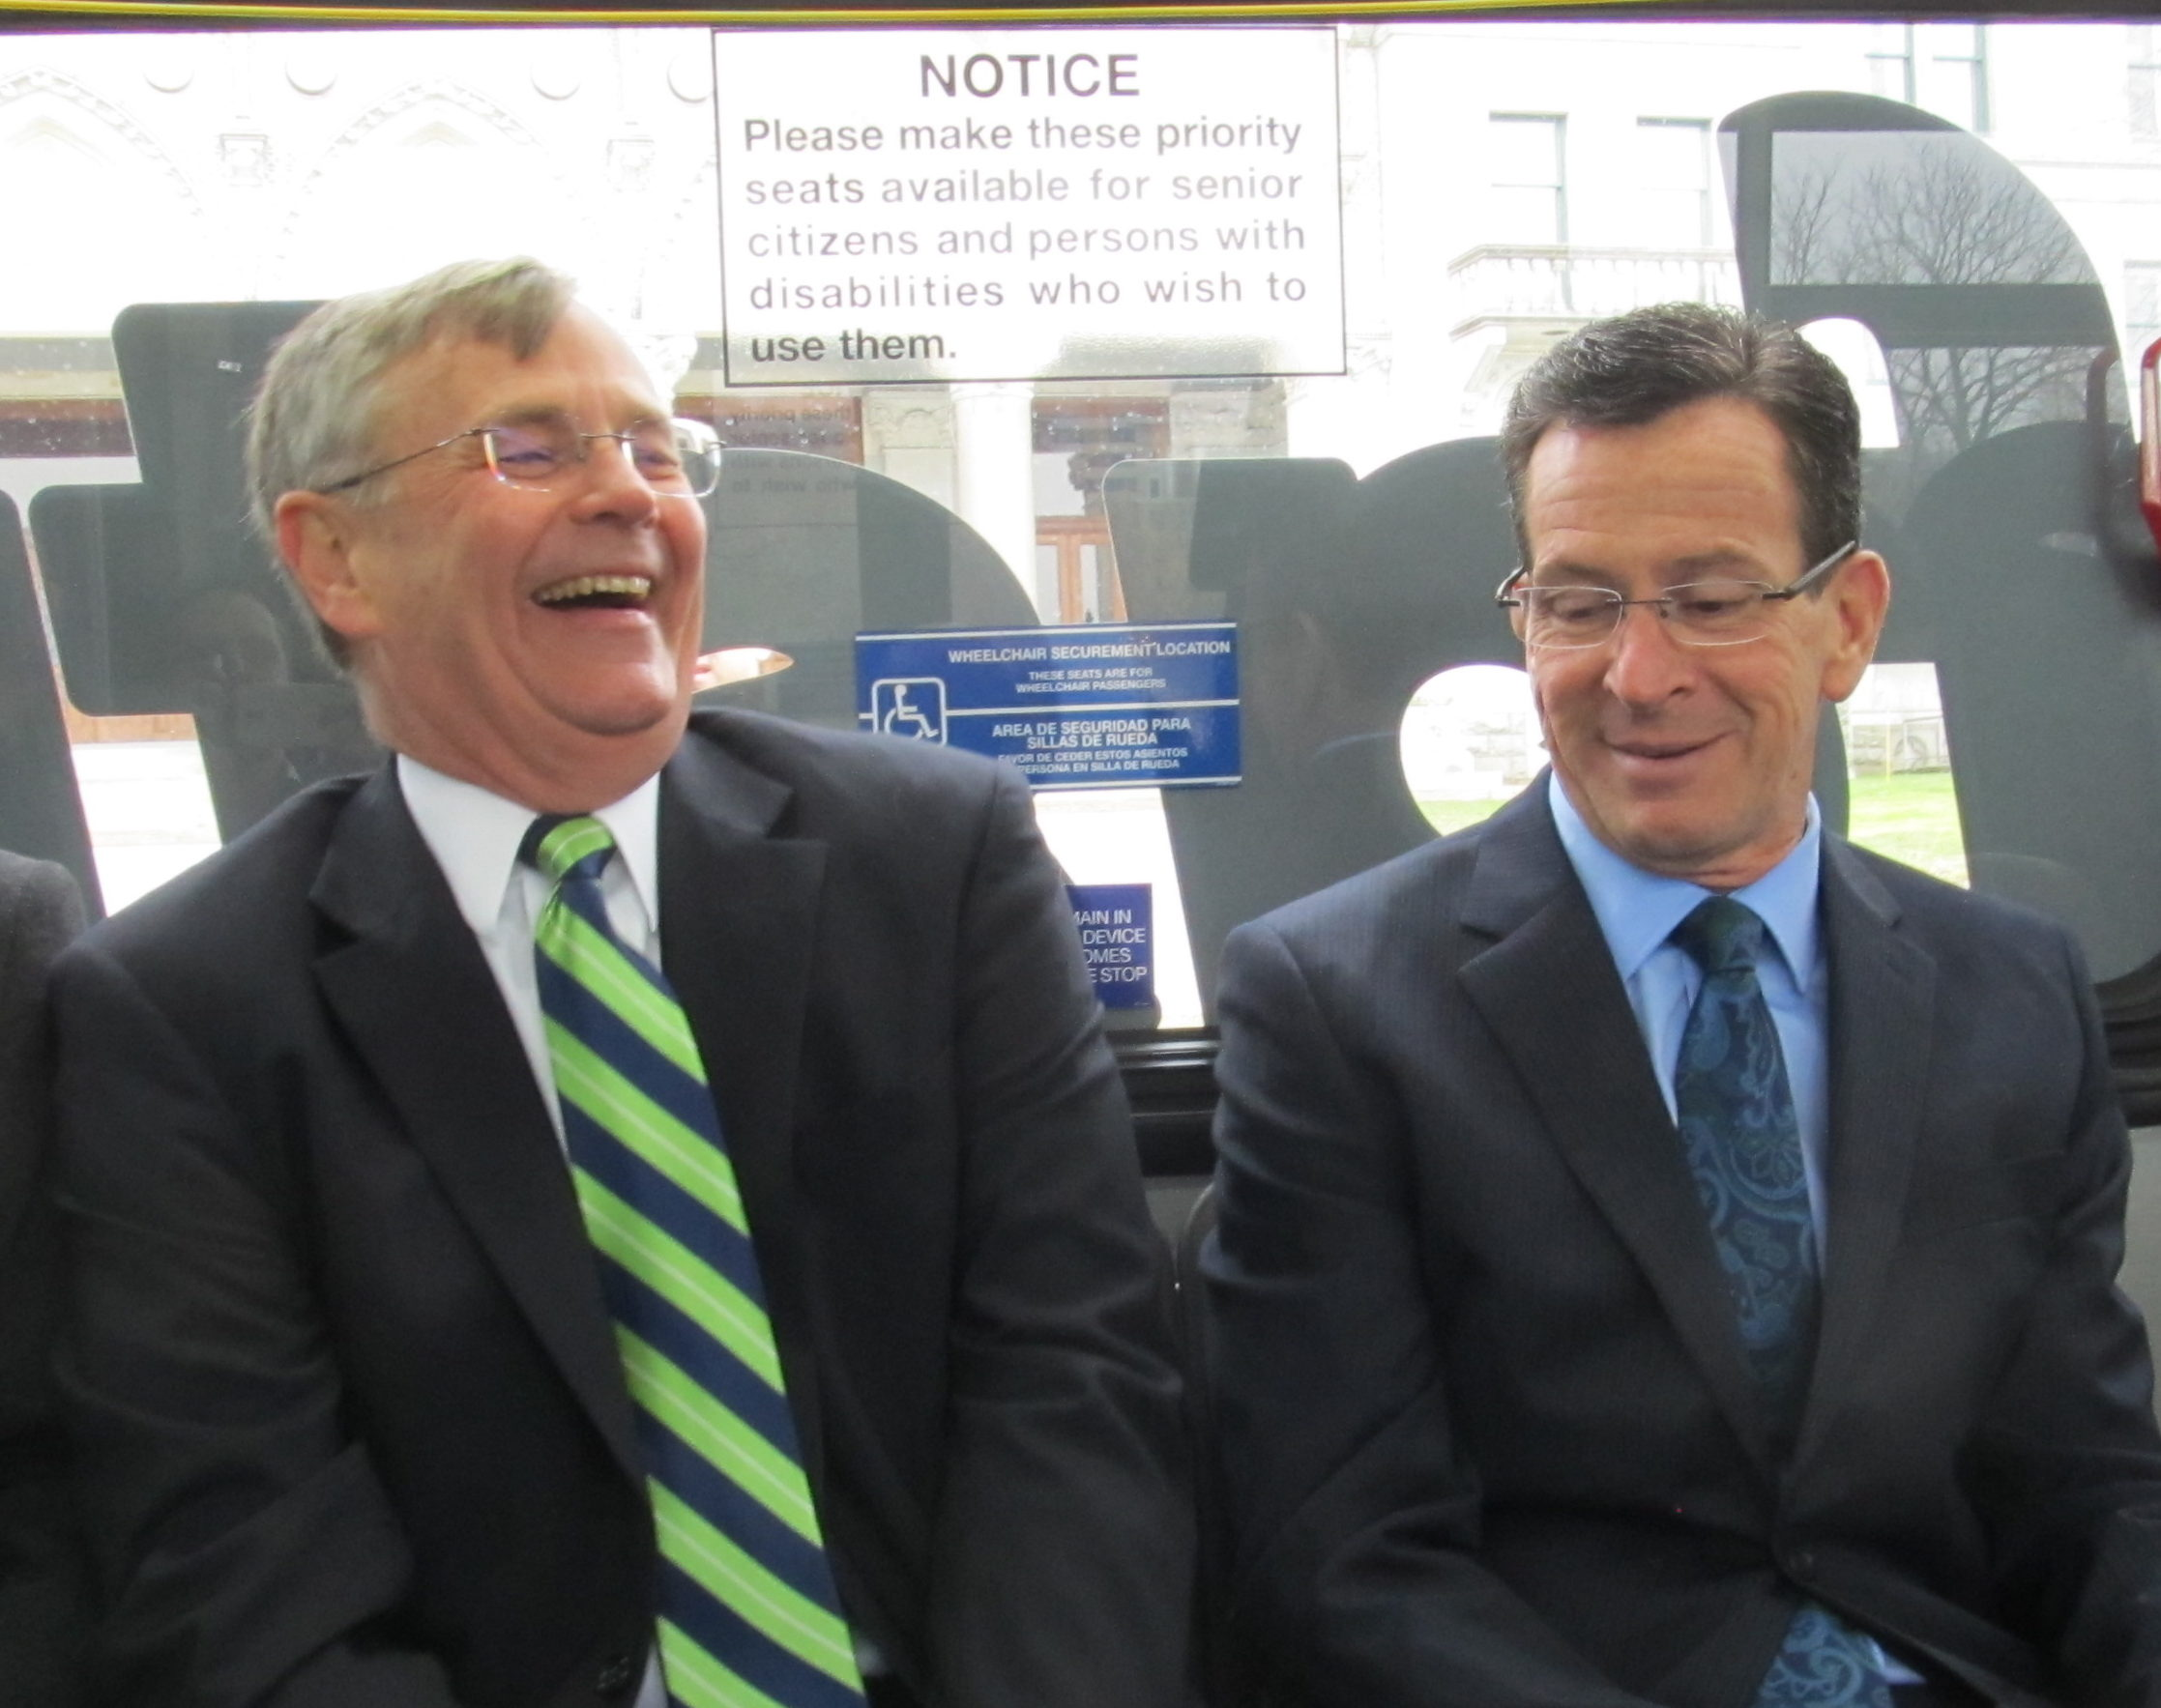 Gov. Dannel P. Malloy and  Transportation Commissioner James Redeker share a laugh at the start of a CT fastrak tour. How to fund transportation was not the source of their amusement.